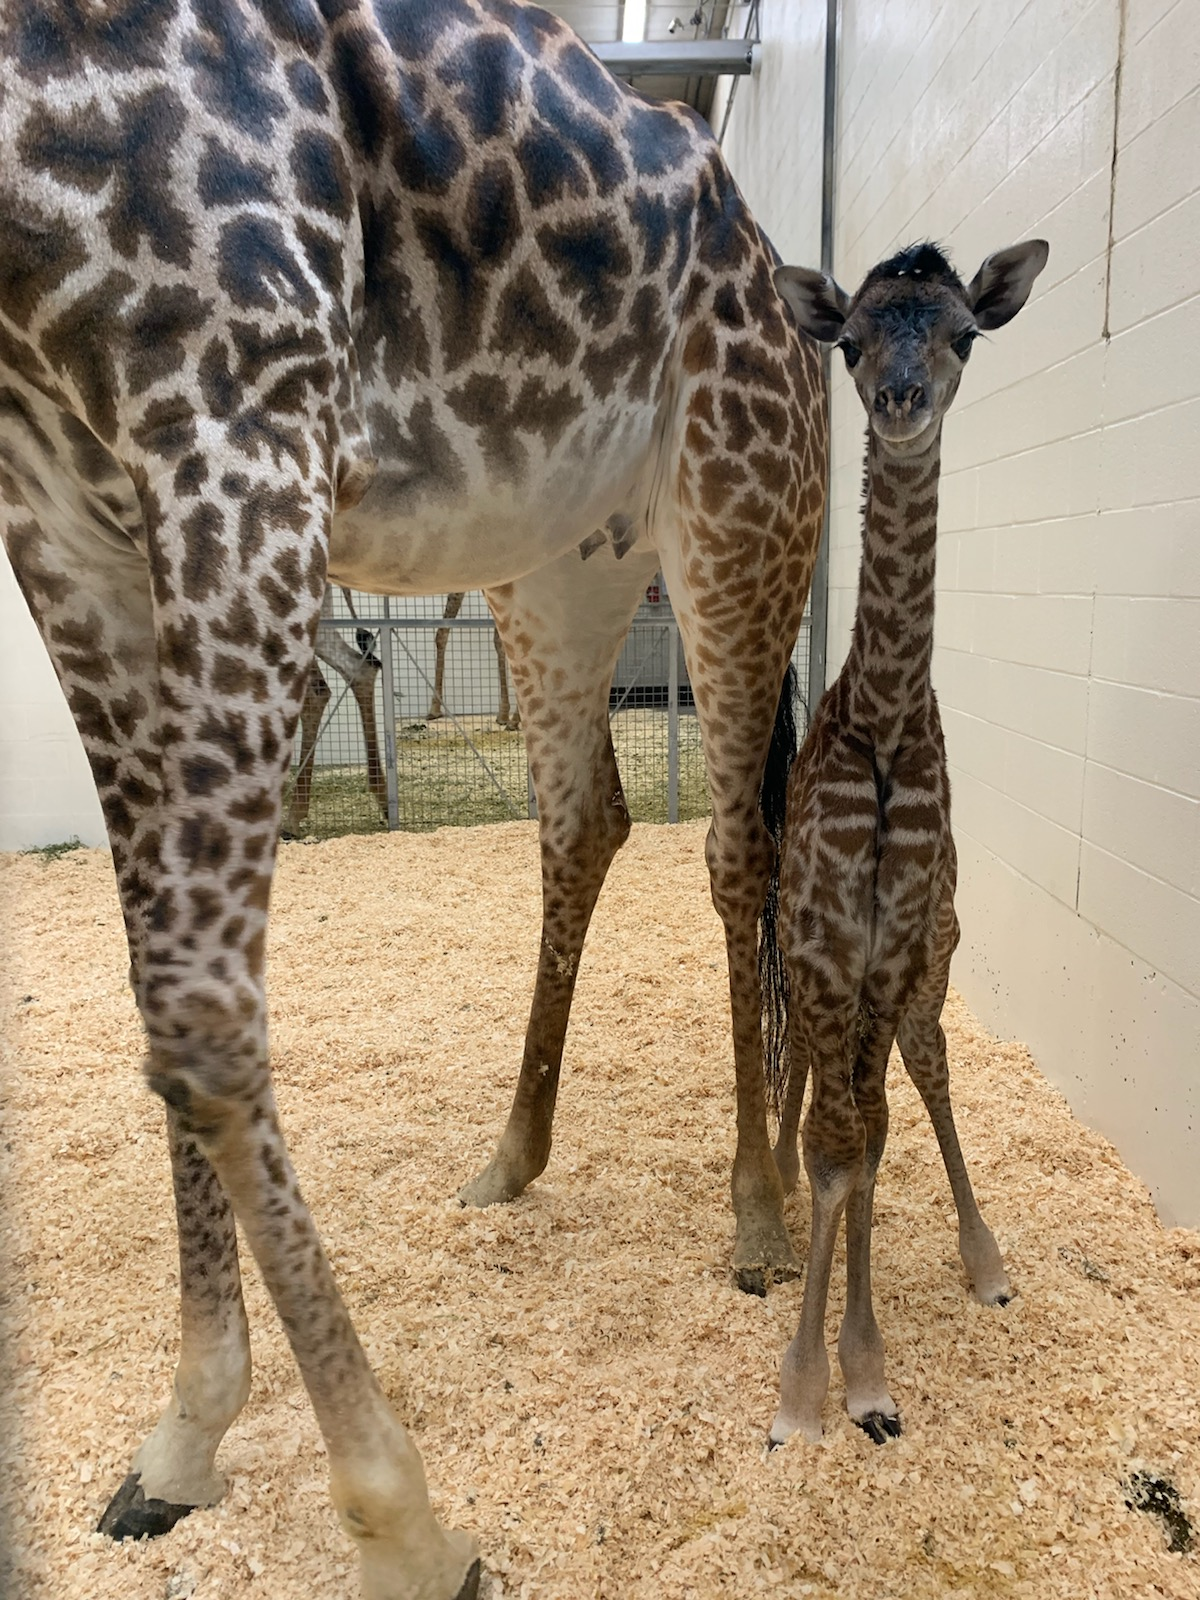 A young giraffe calf with its mum Tessa at Cincinnati Zoo